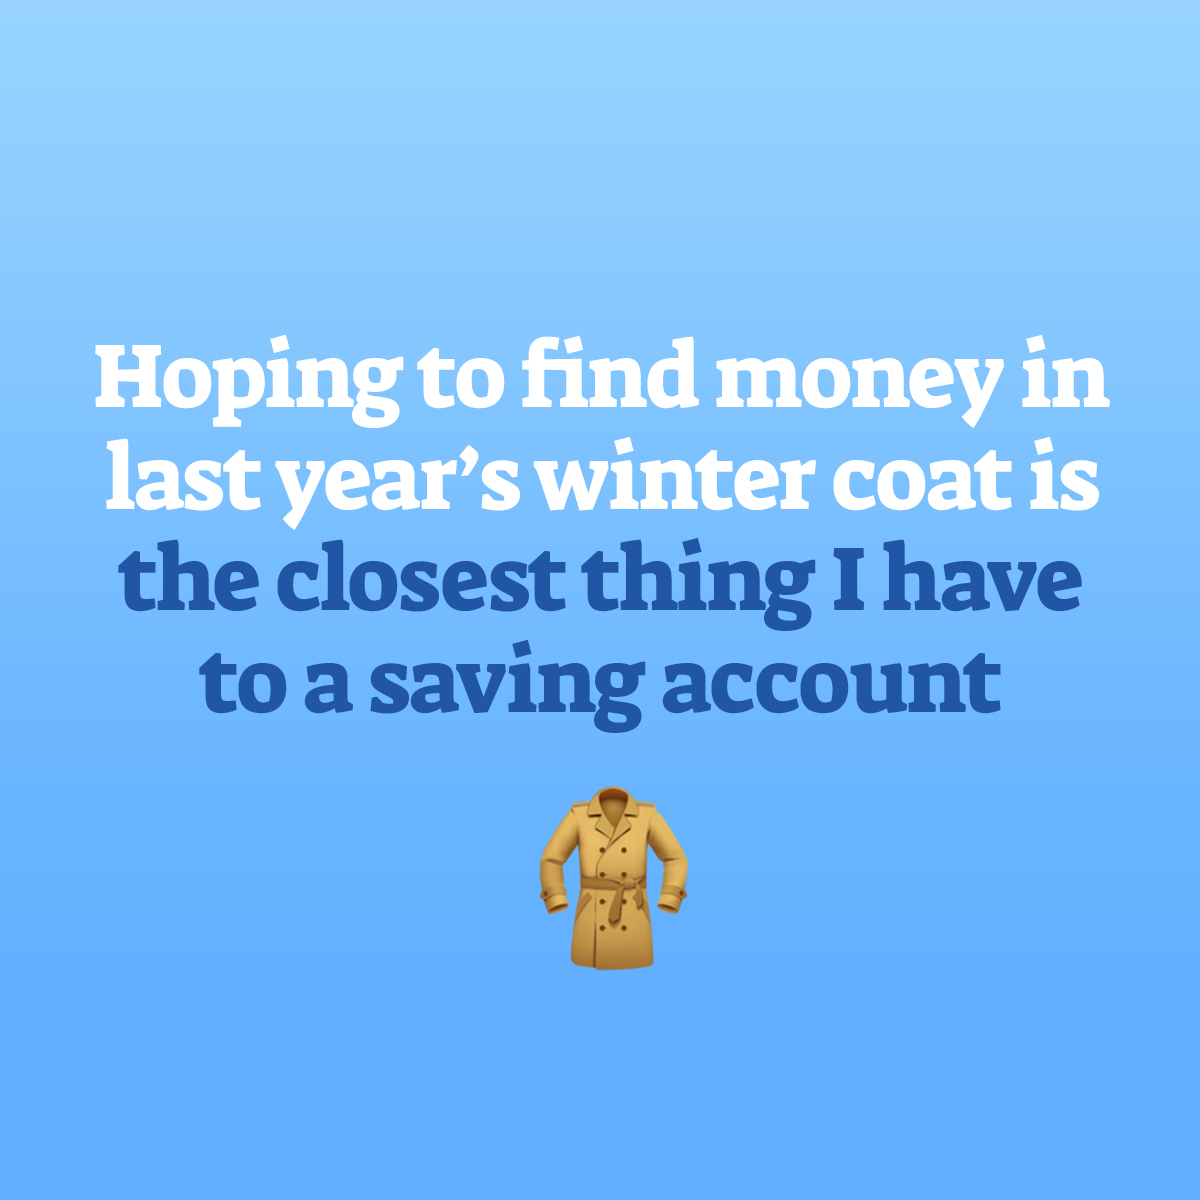 I need to get better at this#deferit #budgeting #moneymemes #frugal https://deferit.com.au pic.twitter.com/cKsdqYFkCz